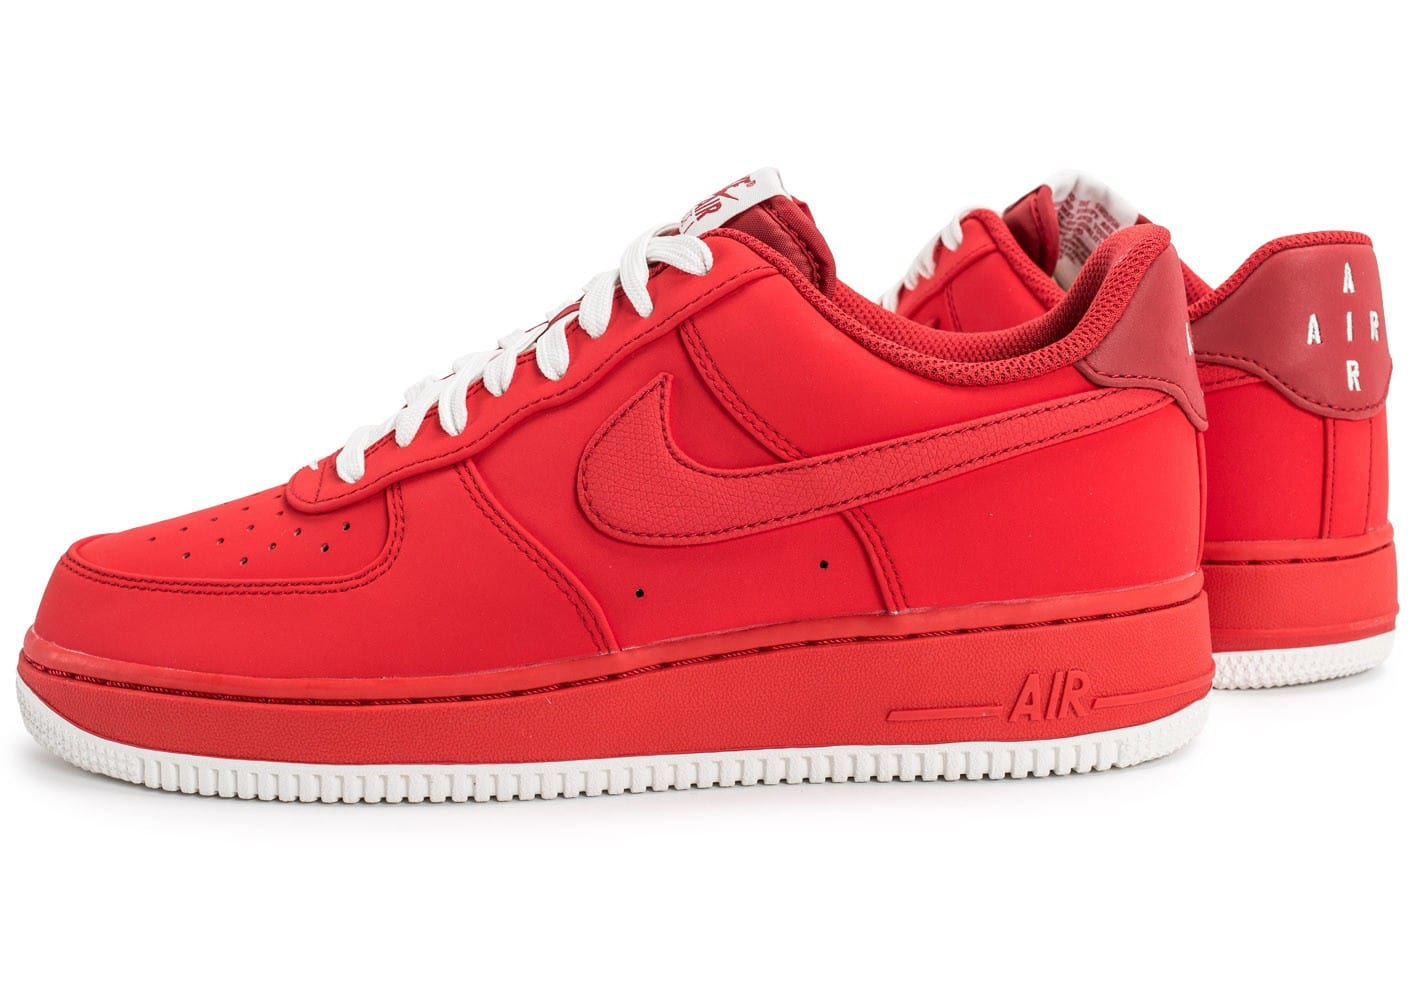 Chaussures Nike Air Force 1 rouges homme nizpsd